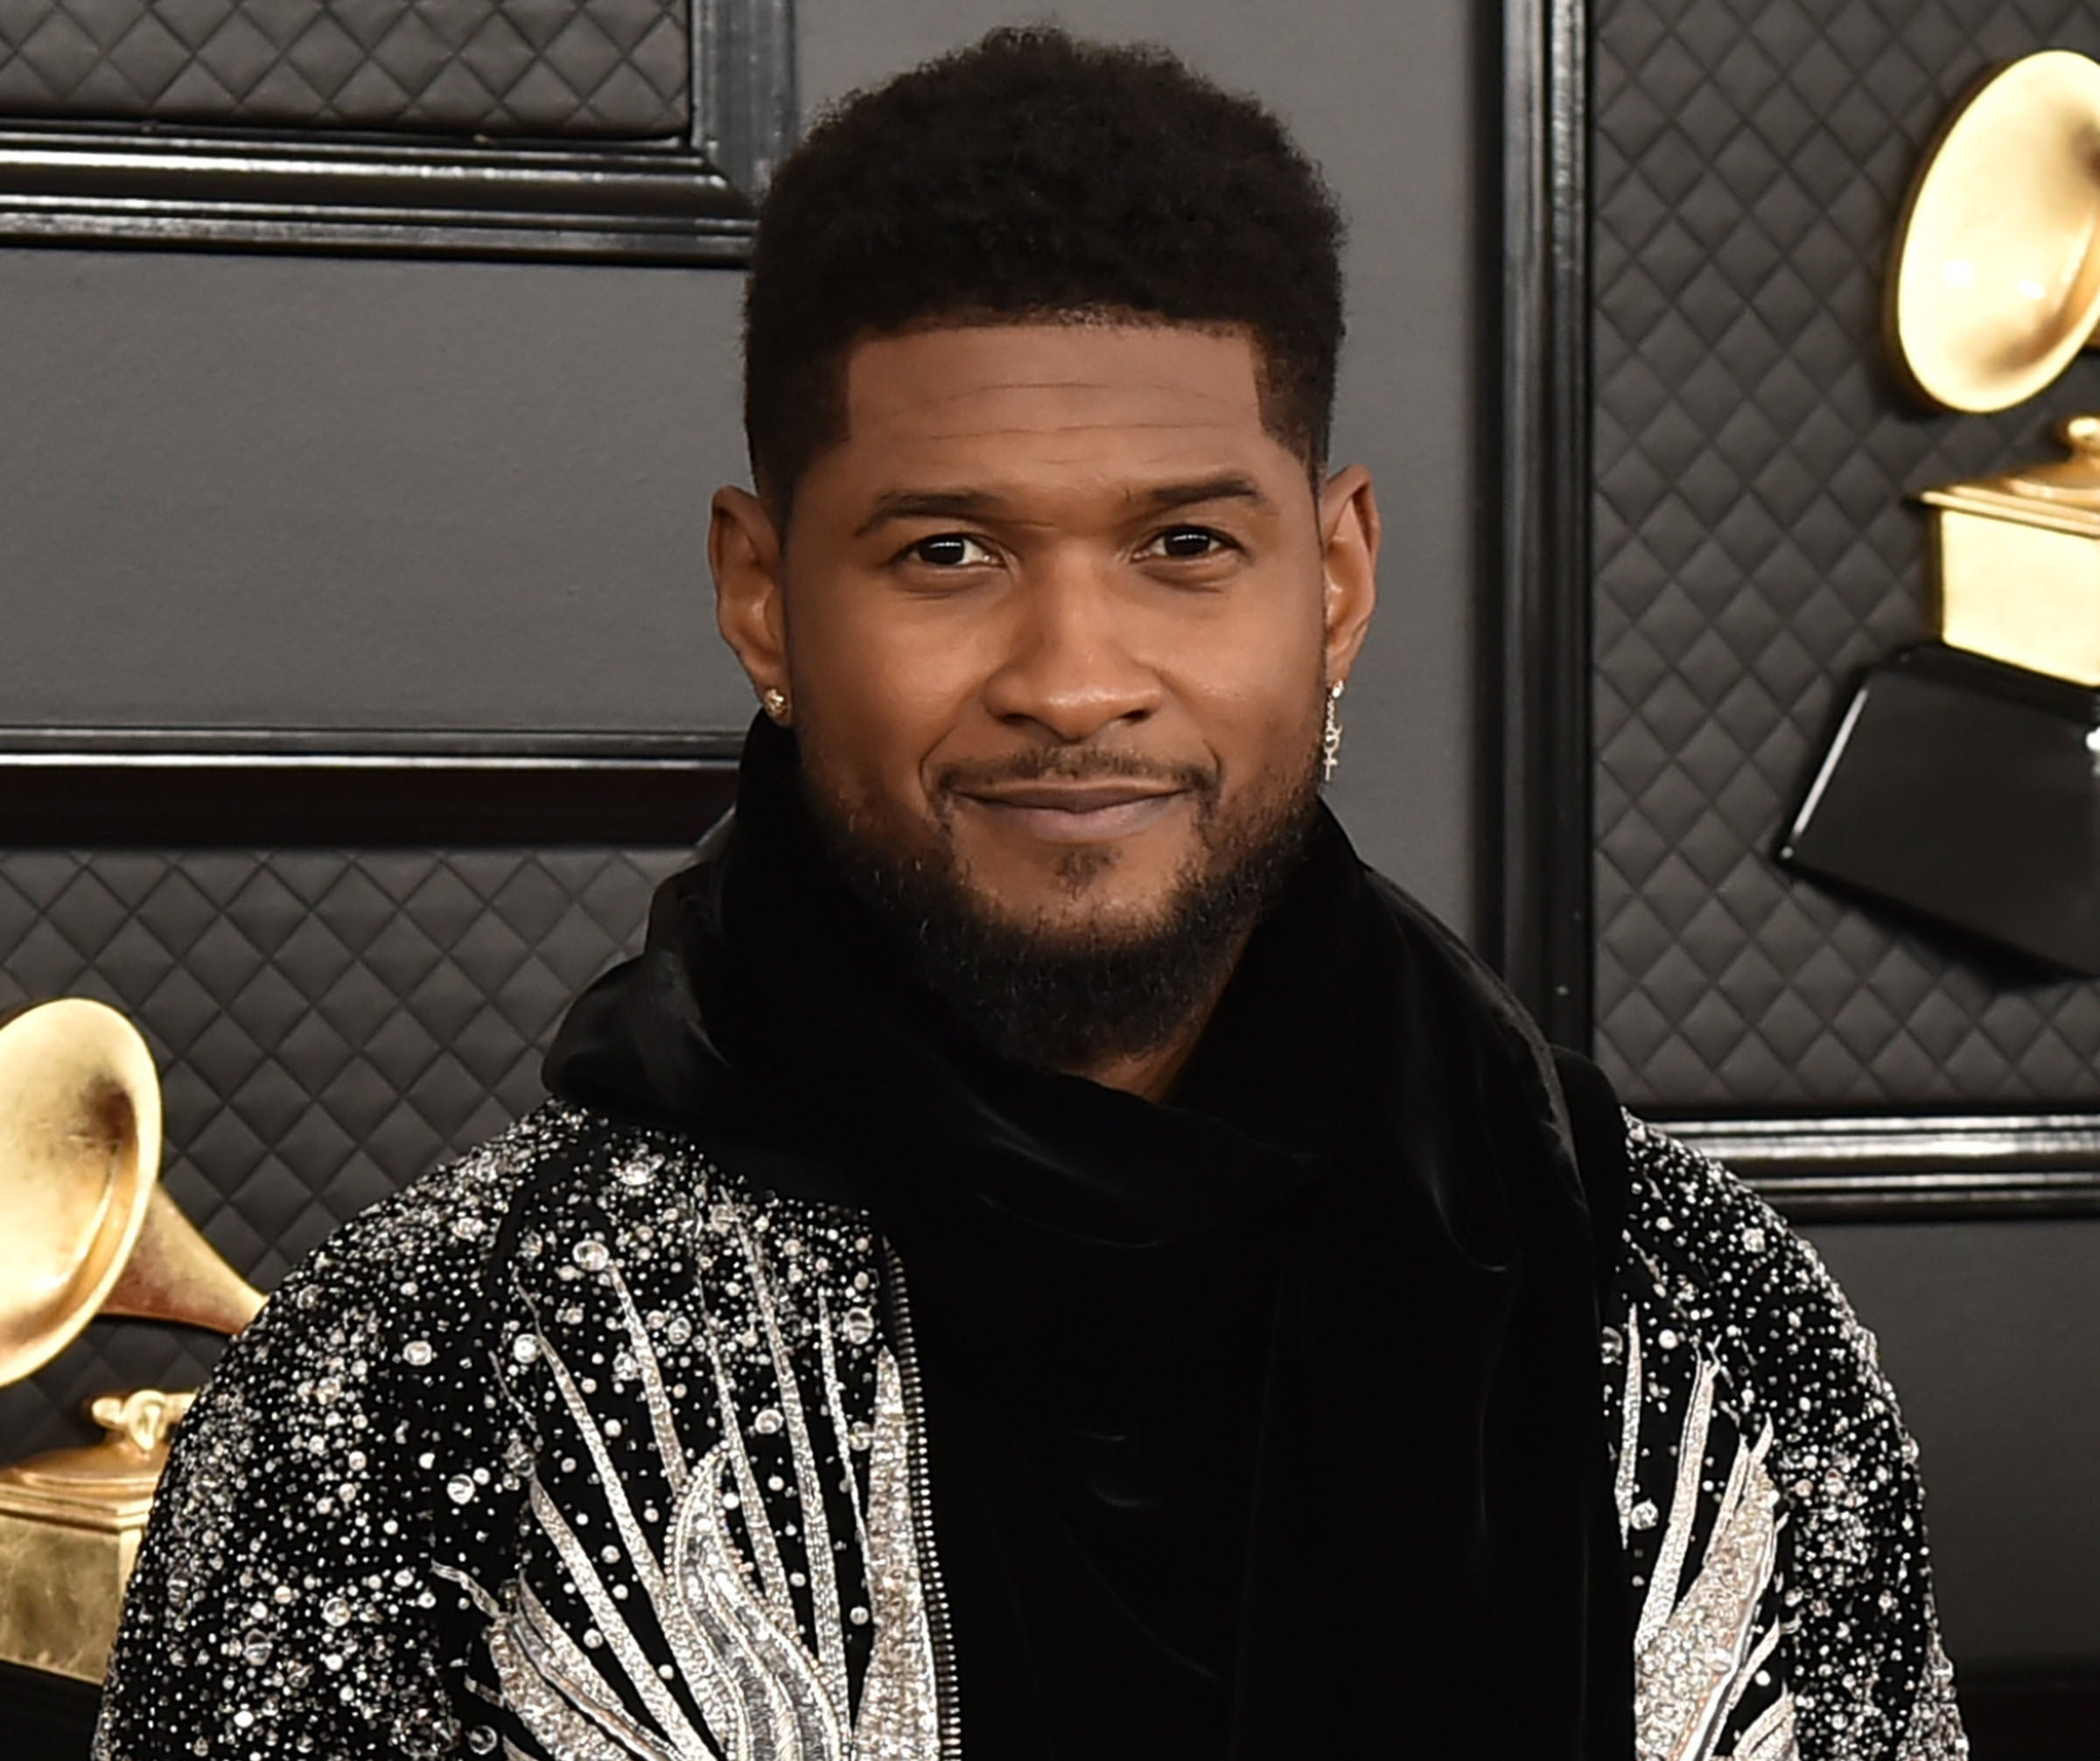 Usher wears a black hoodie and jacket with crystal embellishments on a red carpet